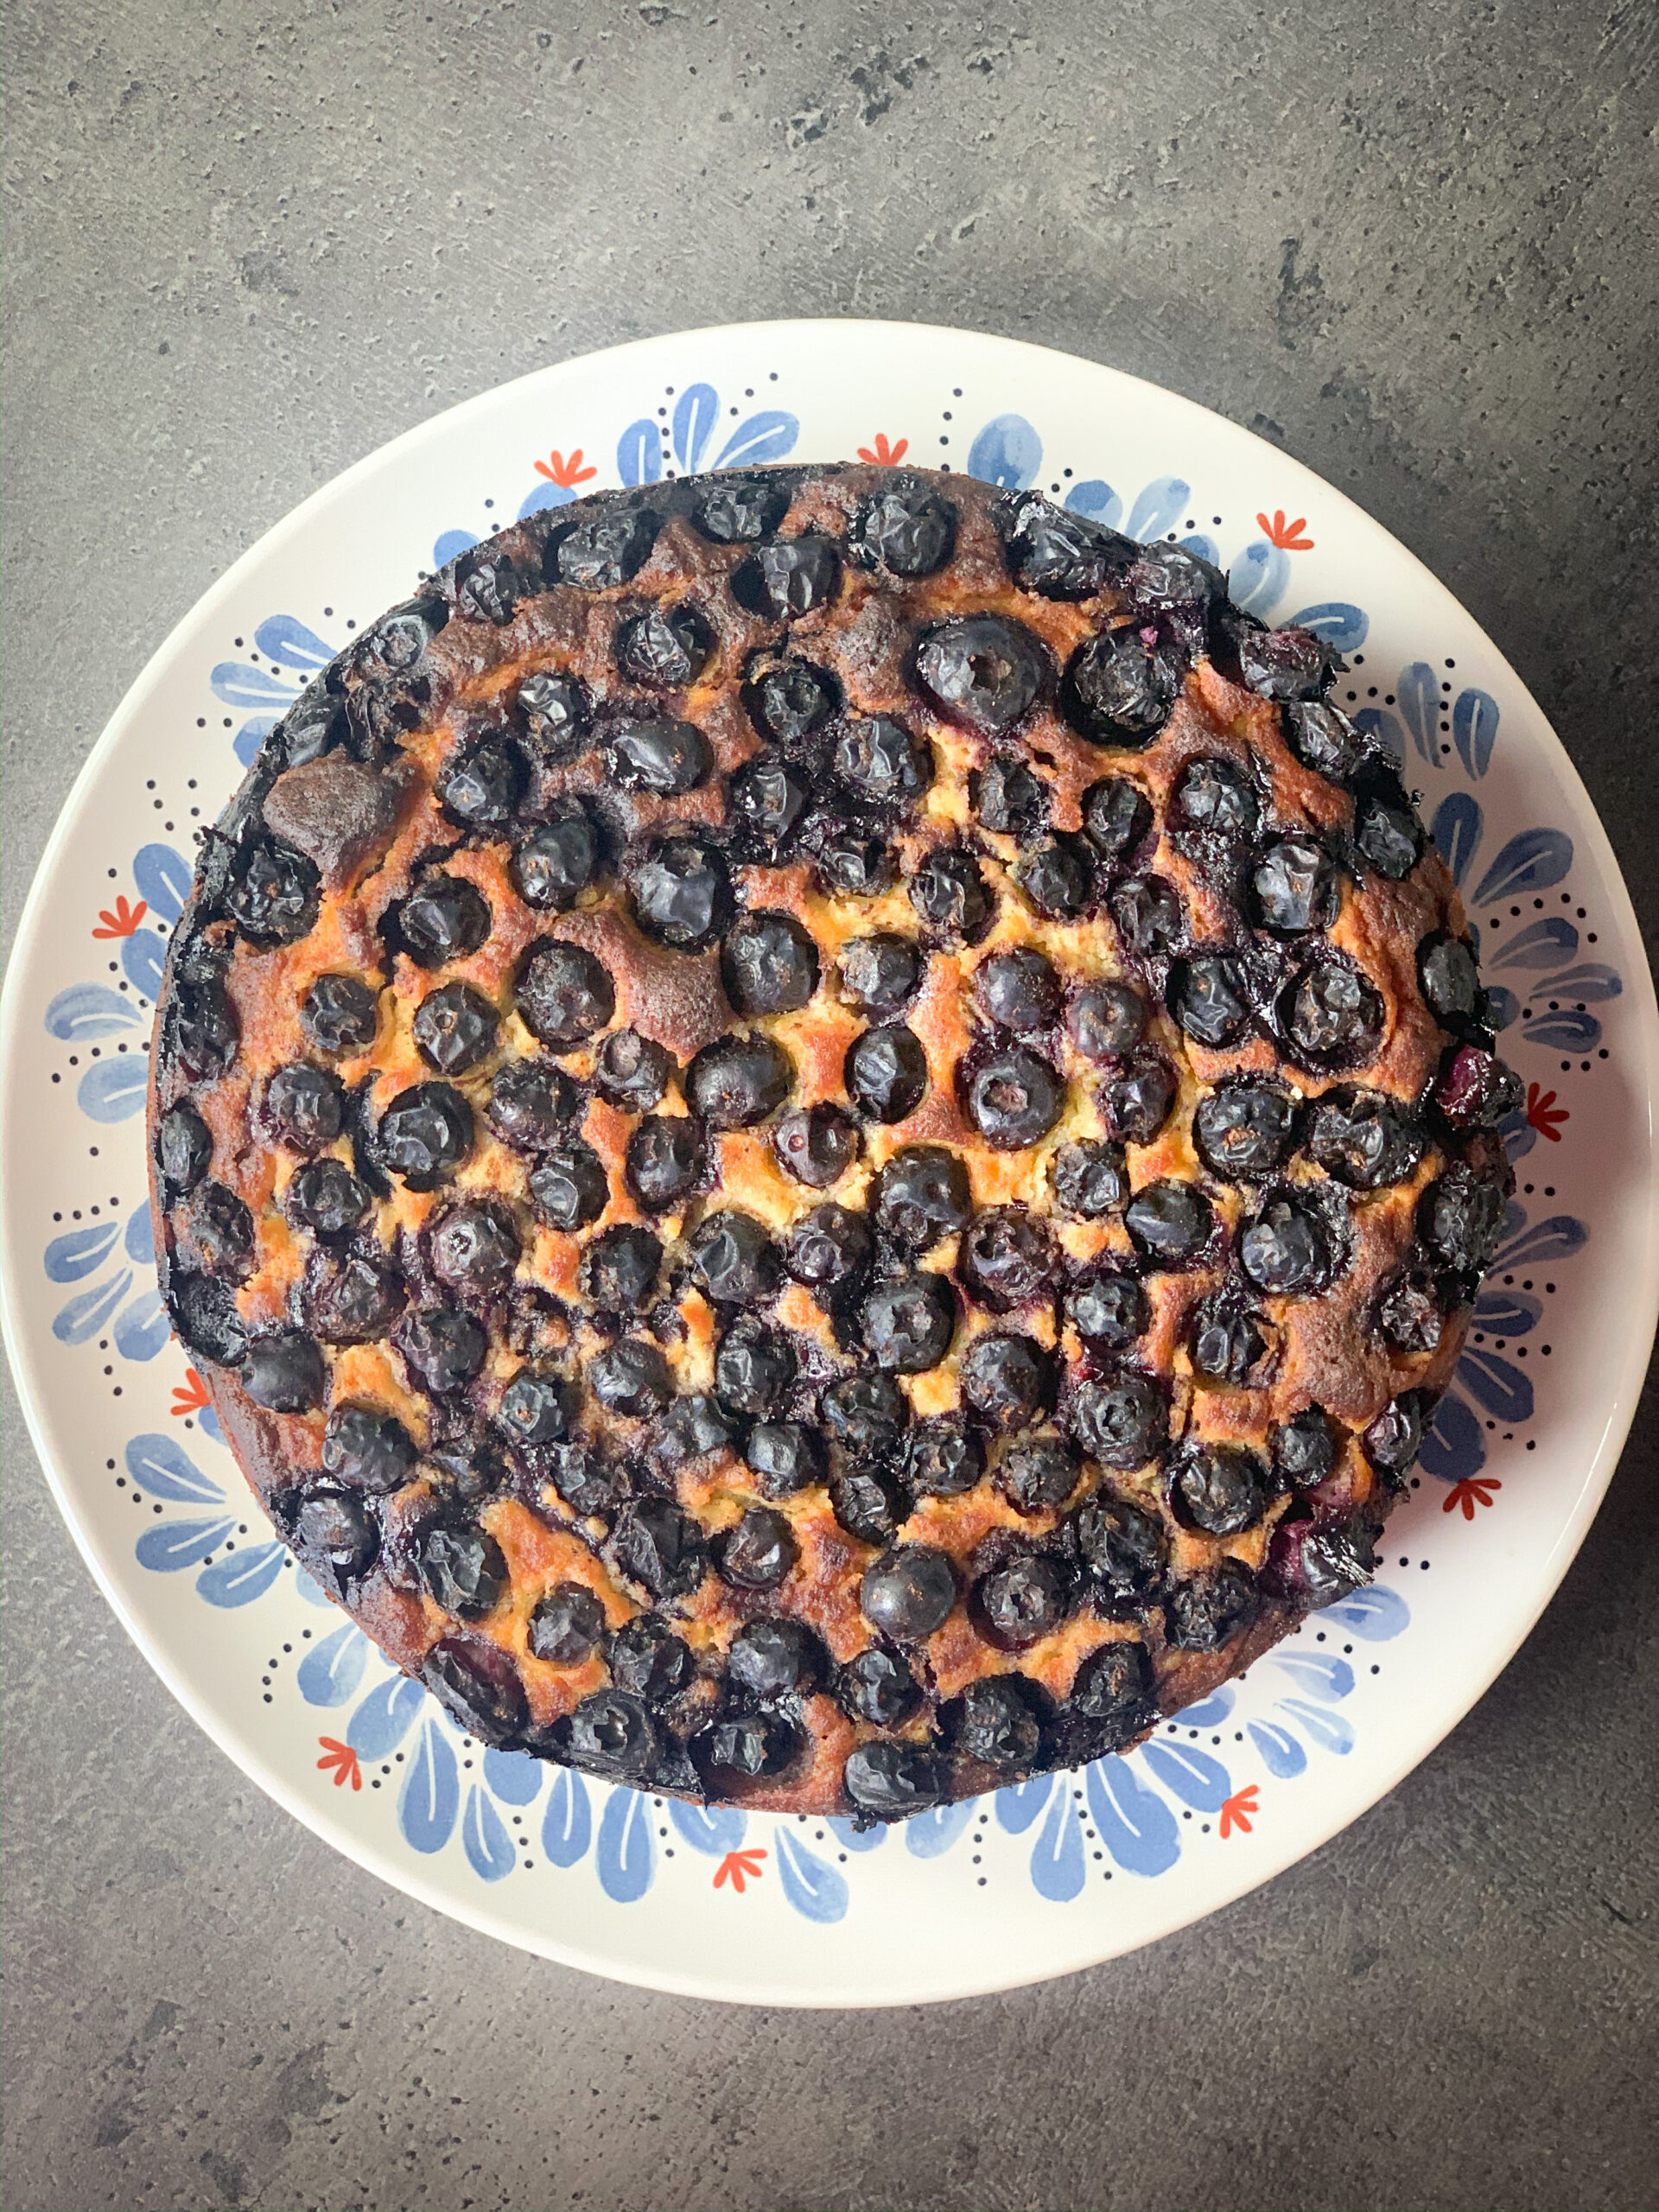 Picture of a whole keto blueberry pie on a plate